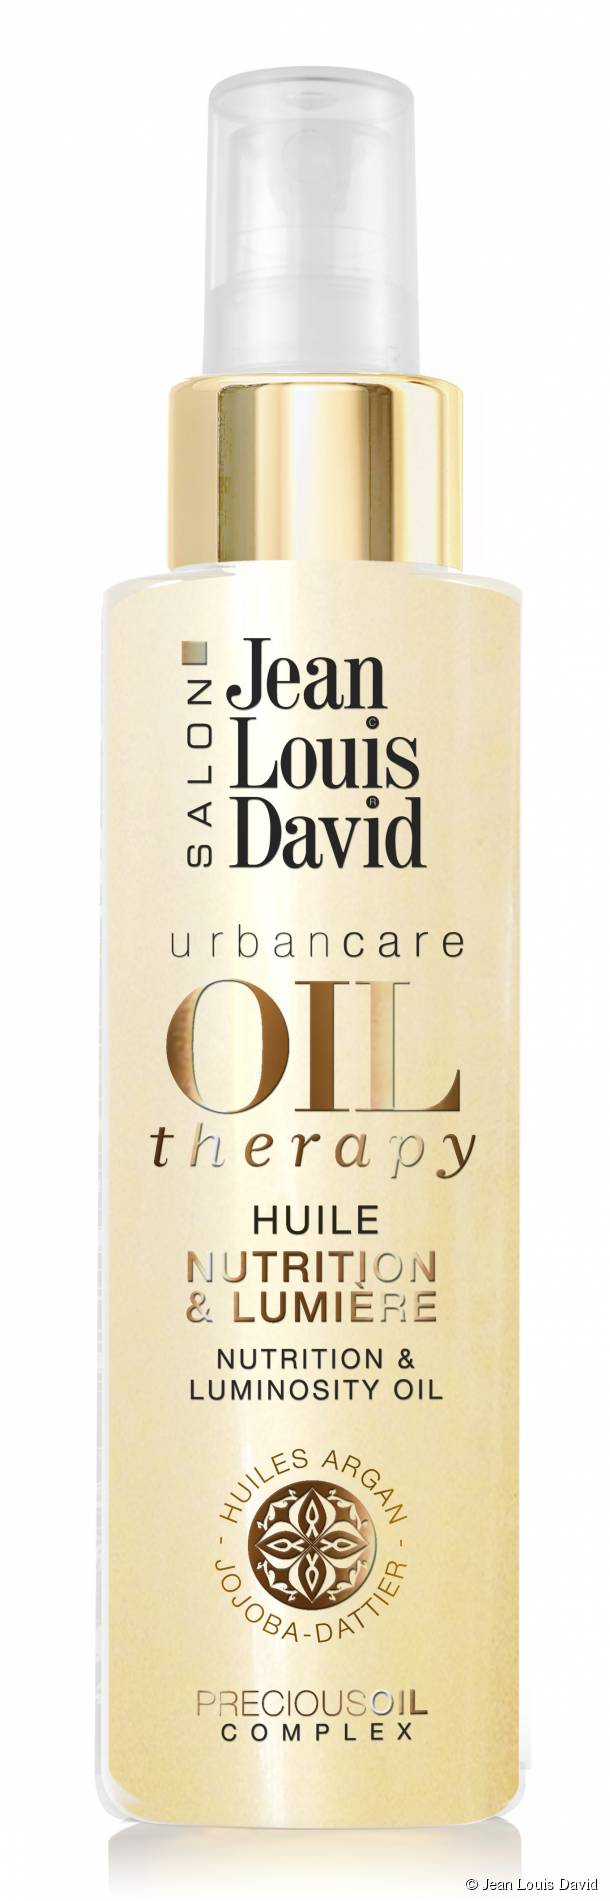 3 Jean Louis David products designed for thick hair